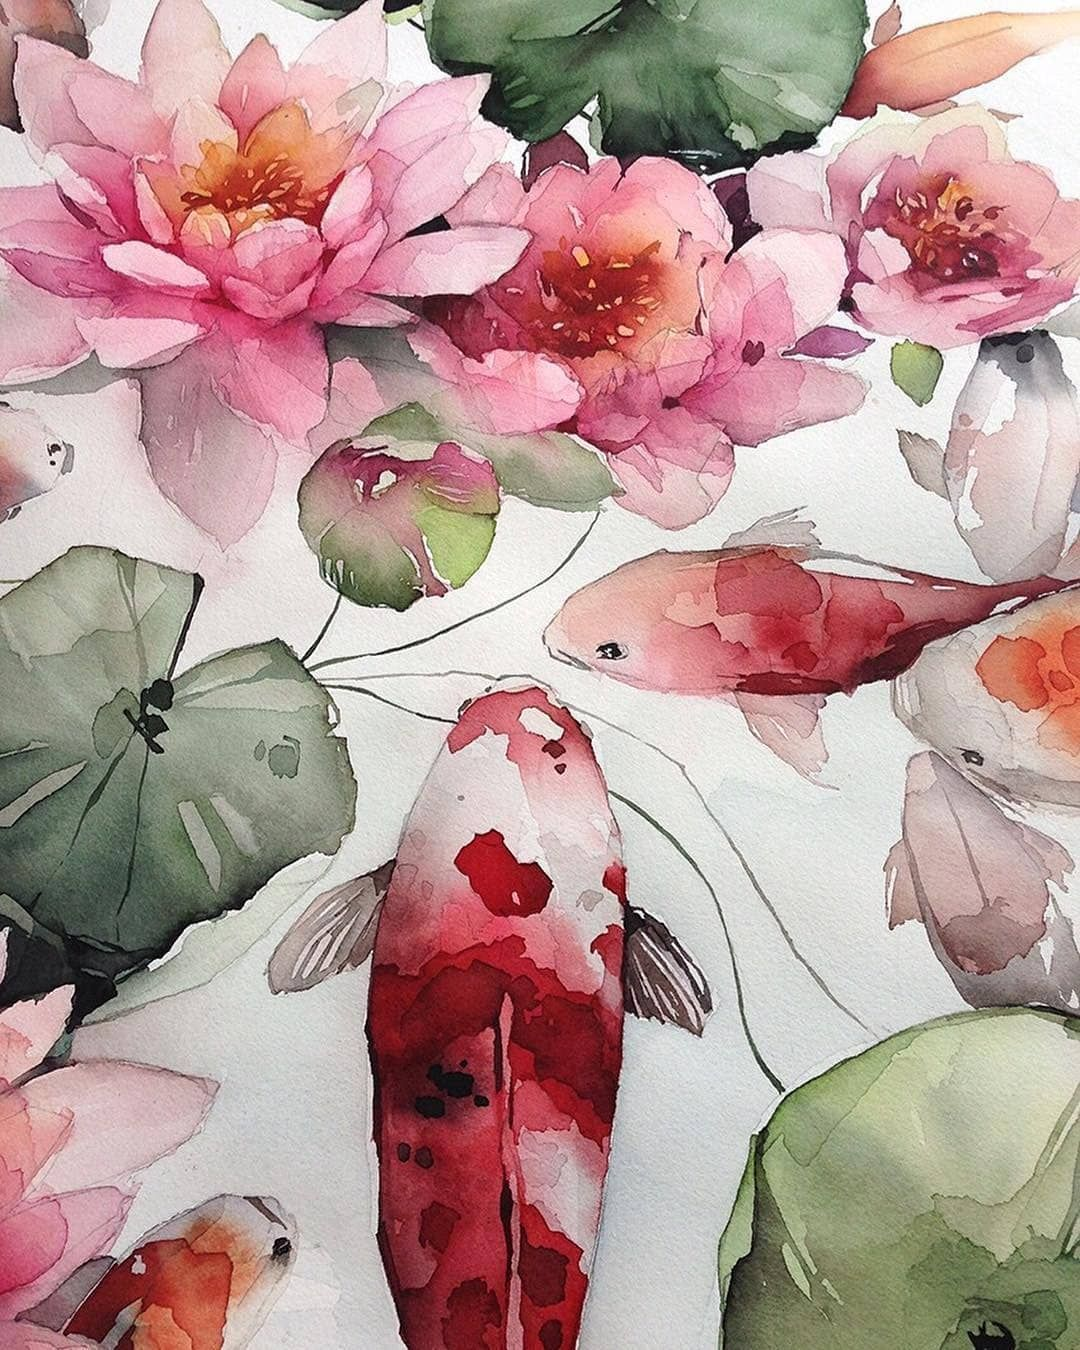 Top Watercolor Public On Instagram More Art Every Day On